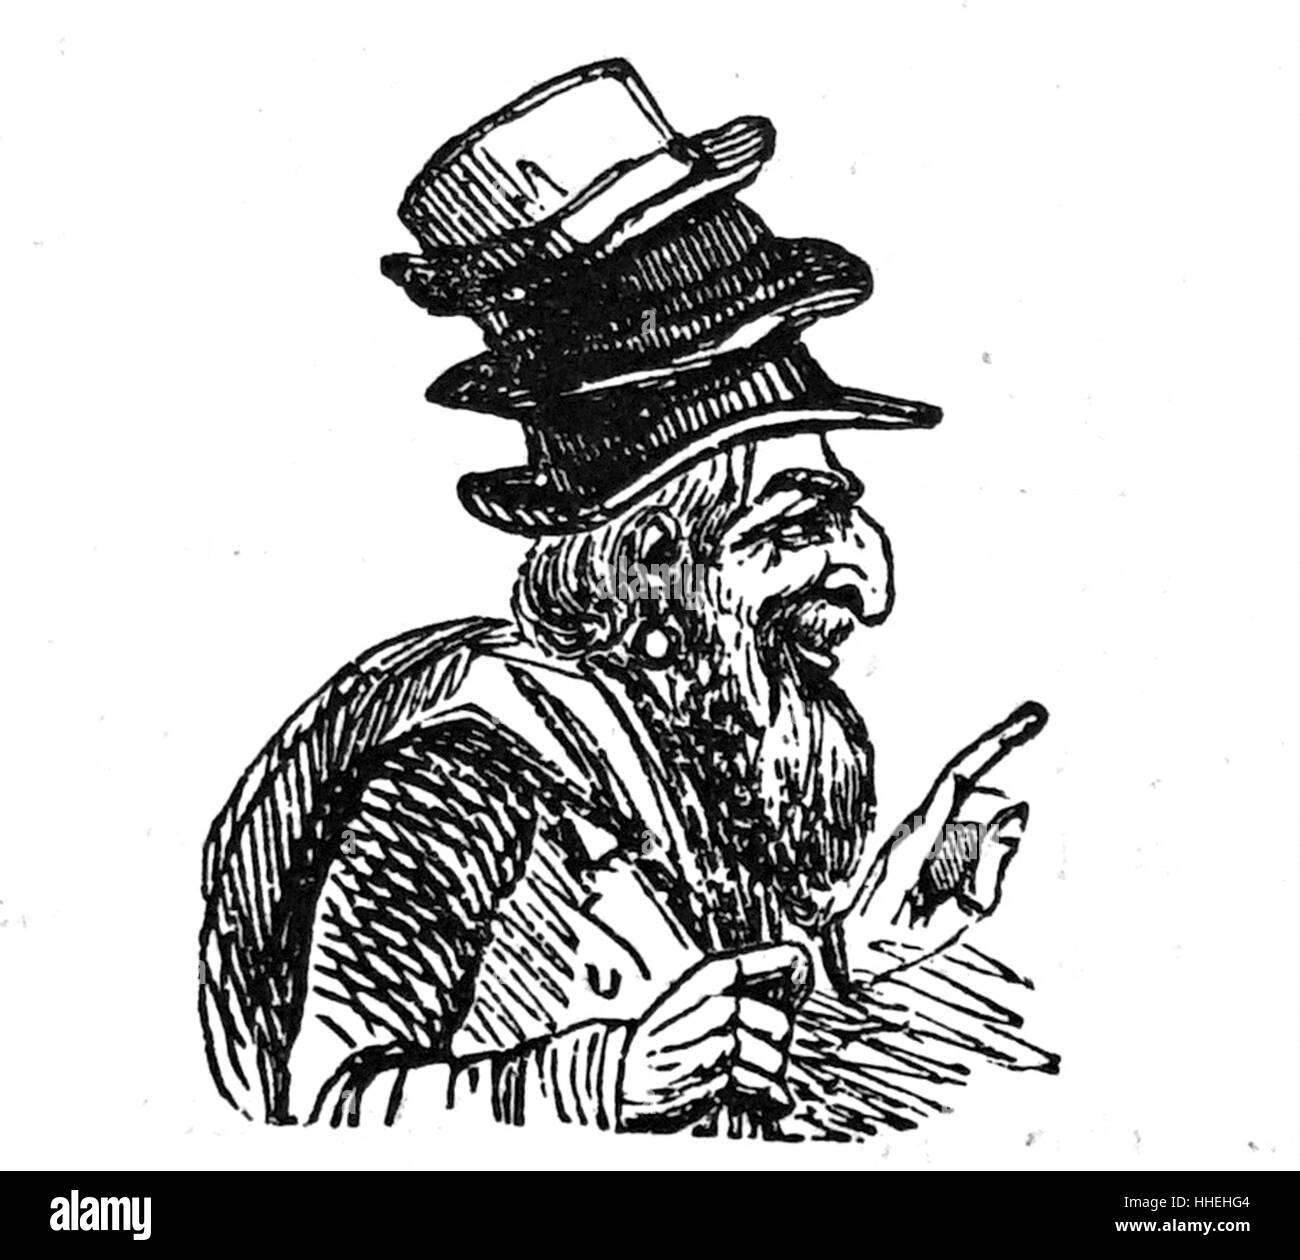 Illustration of a Jewish street trader selling hats. Dated 19th Century - Stock Image